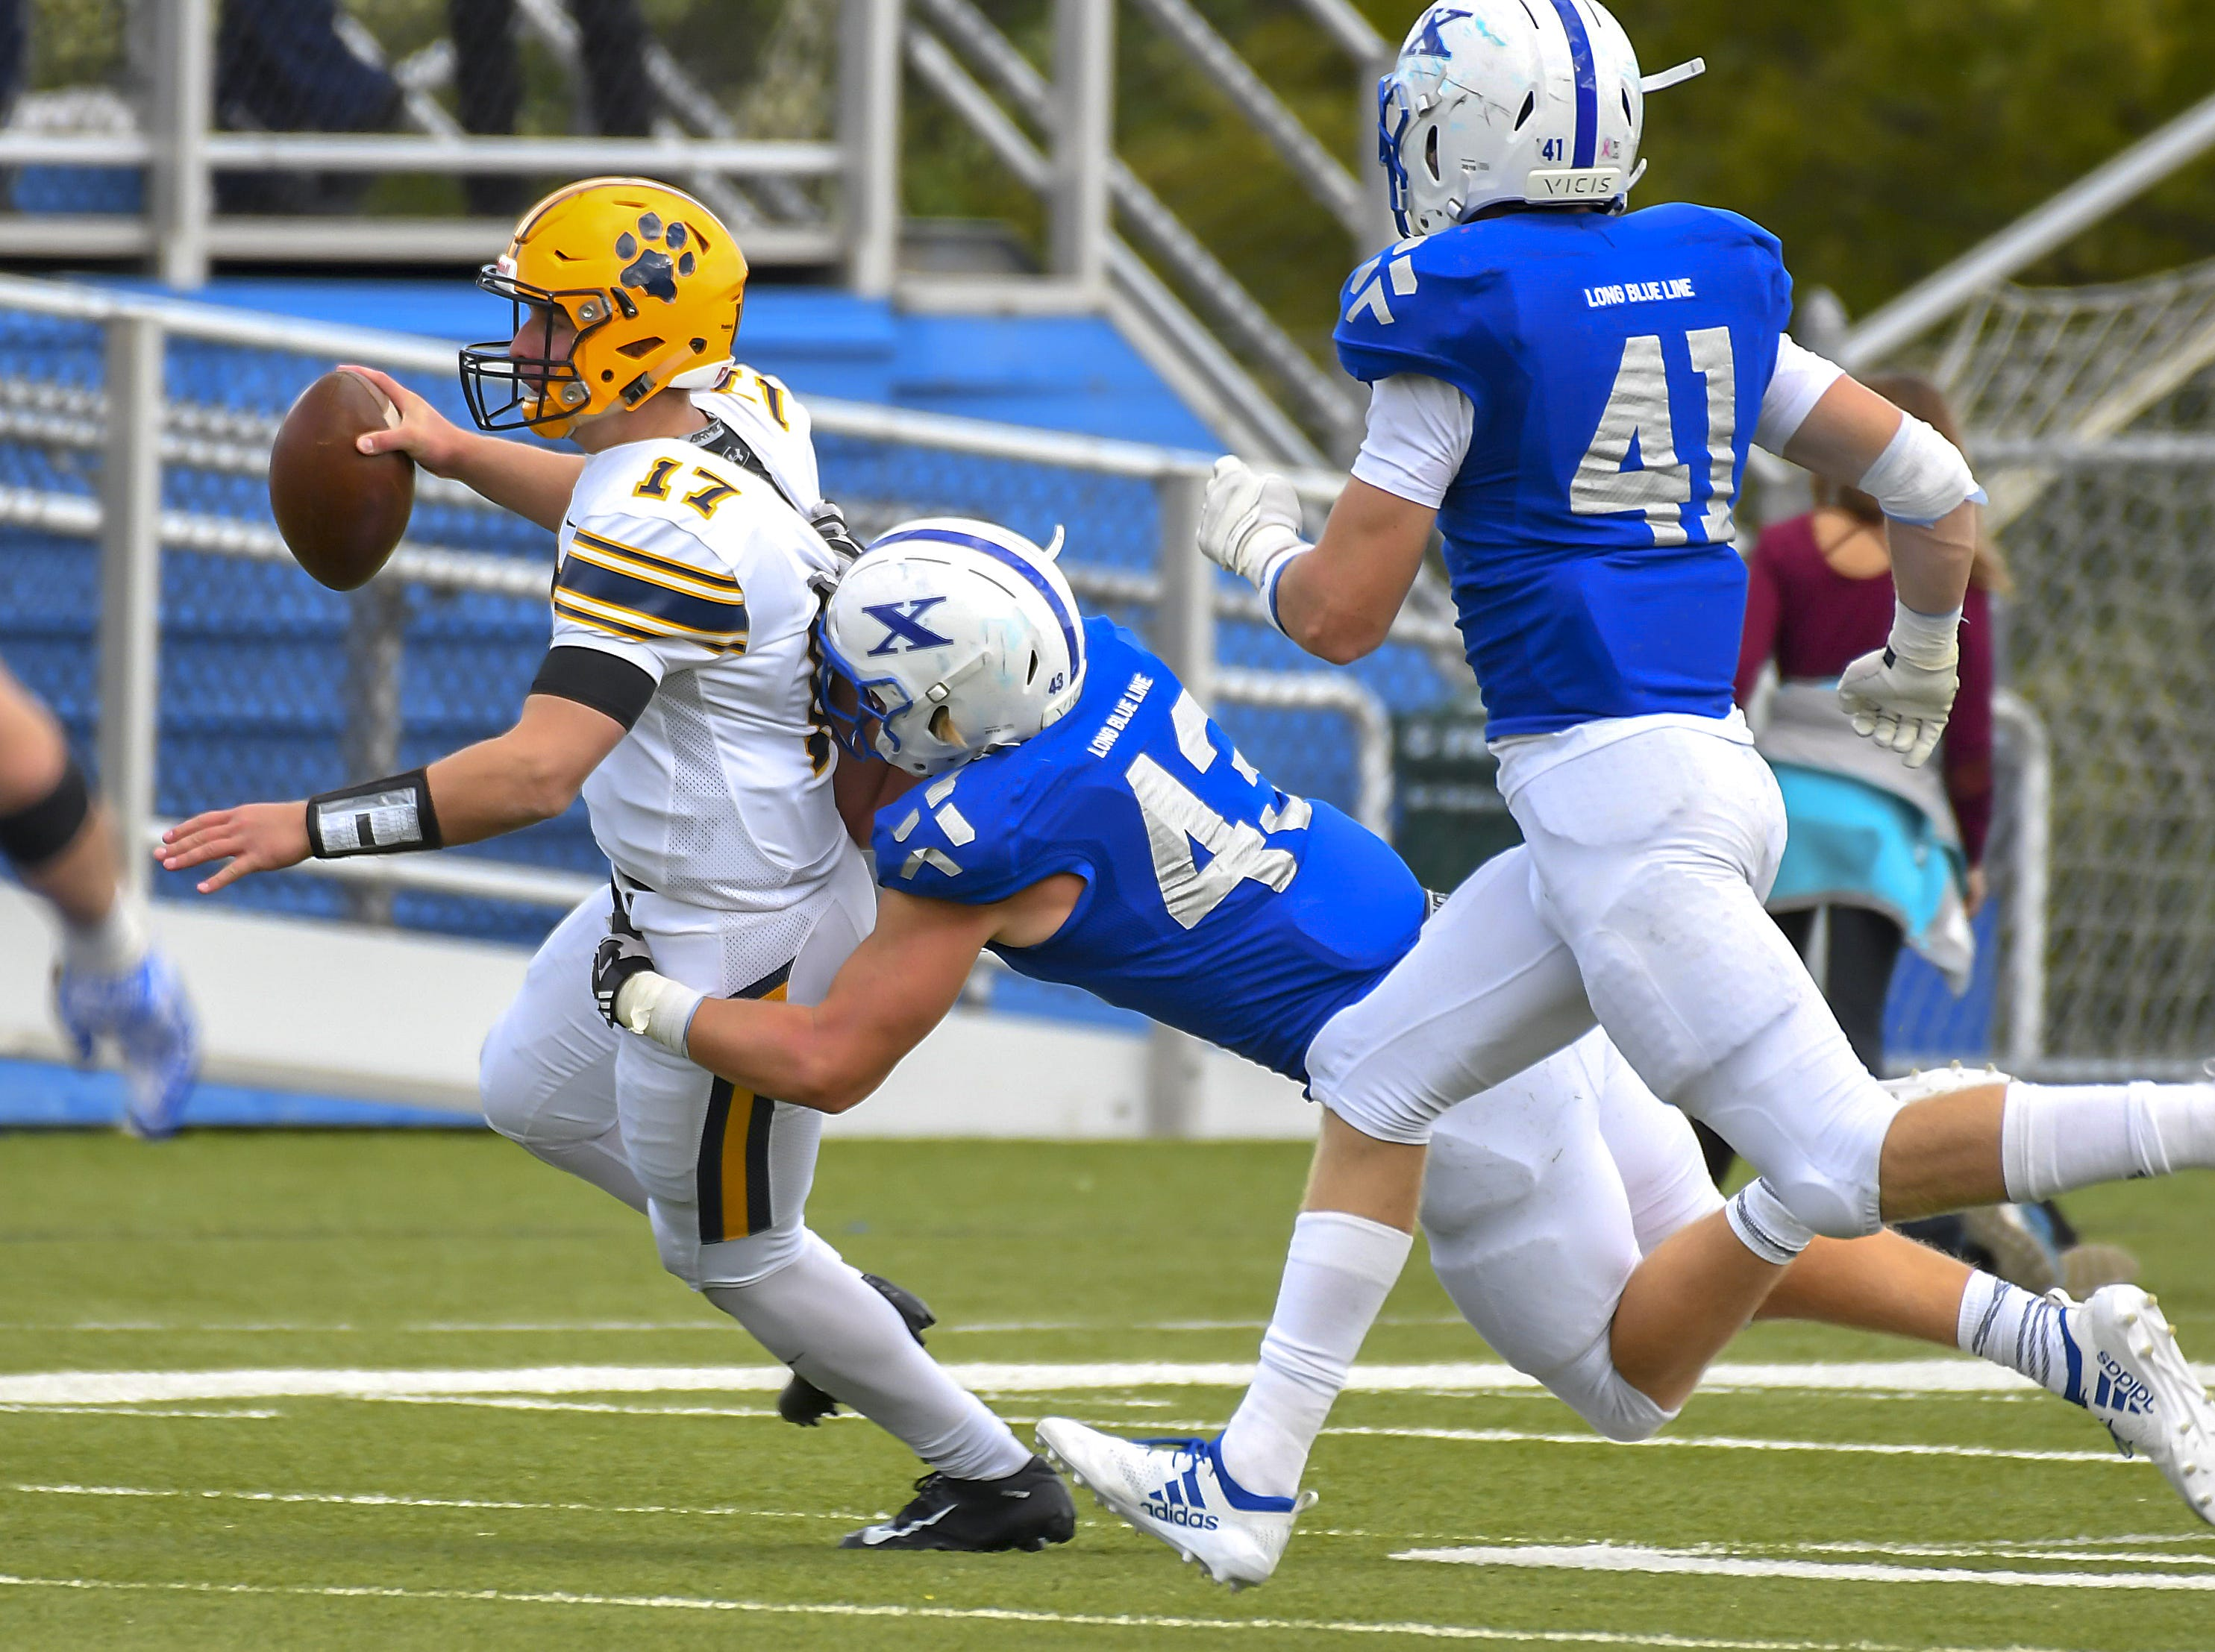 St X linebacker Nathan Arthur (43) is called for a horse collar tackle against St. Ignaius at St. Xavier High School, Saturday, October, 20 2018